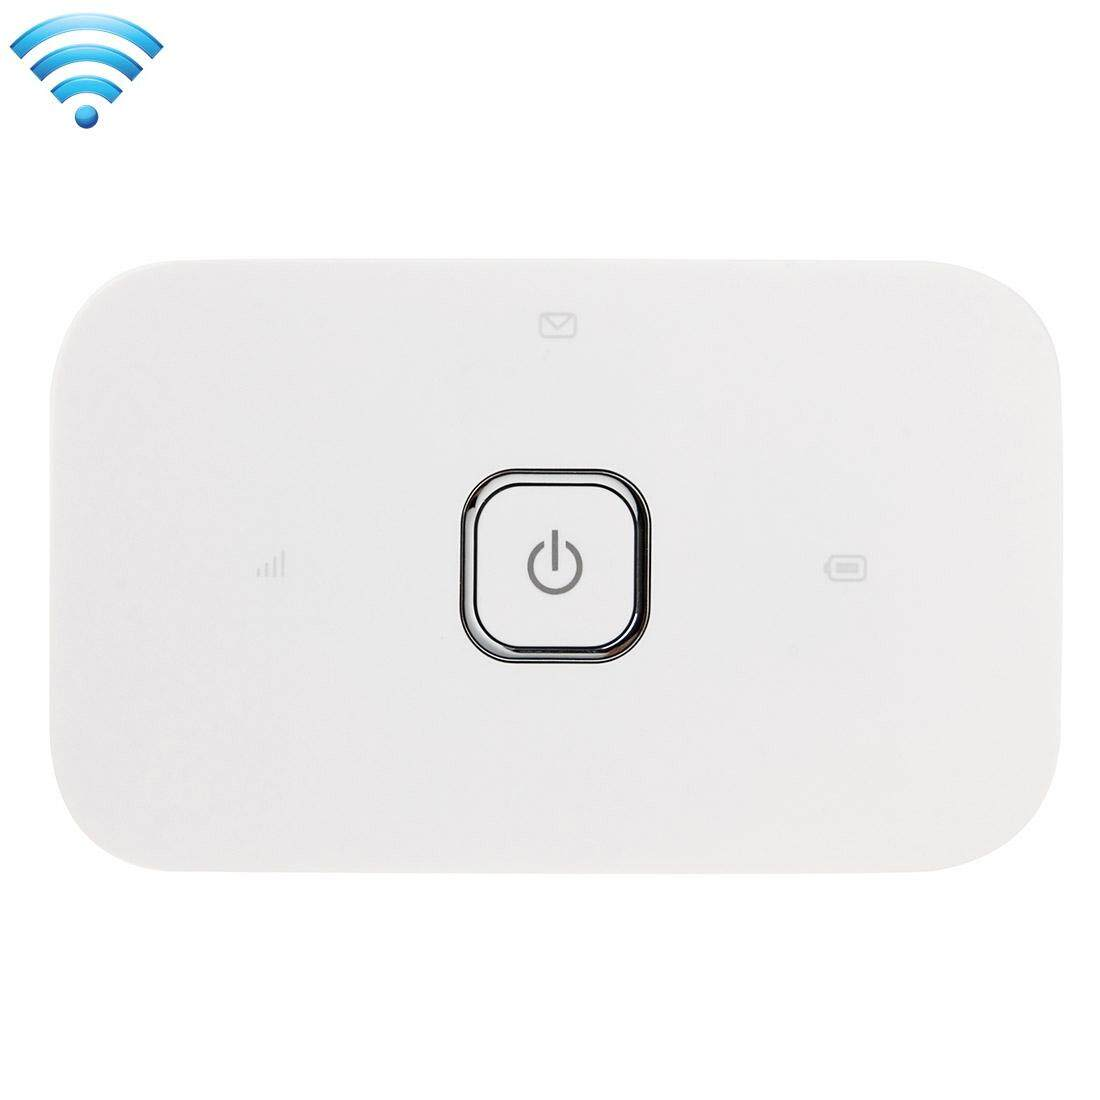 Buy Sell Cheapest Huawei E5573cs 150mbps Best Quality Product E5372s Bolt Slim 1 Unlock Vodafone Mobile Wifi Hotspot R216 Pocket 4g Broadband Modem Mini Router